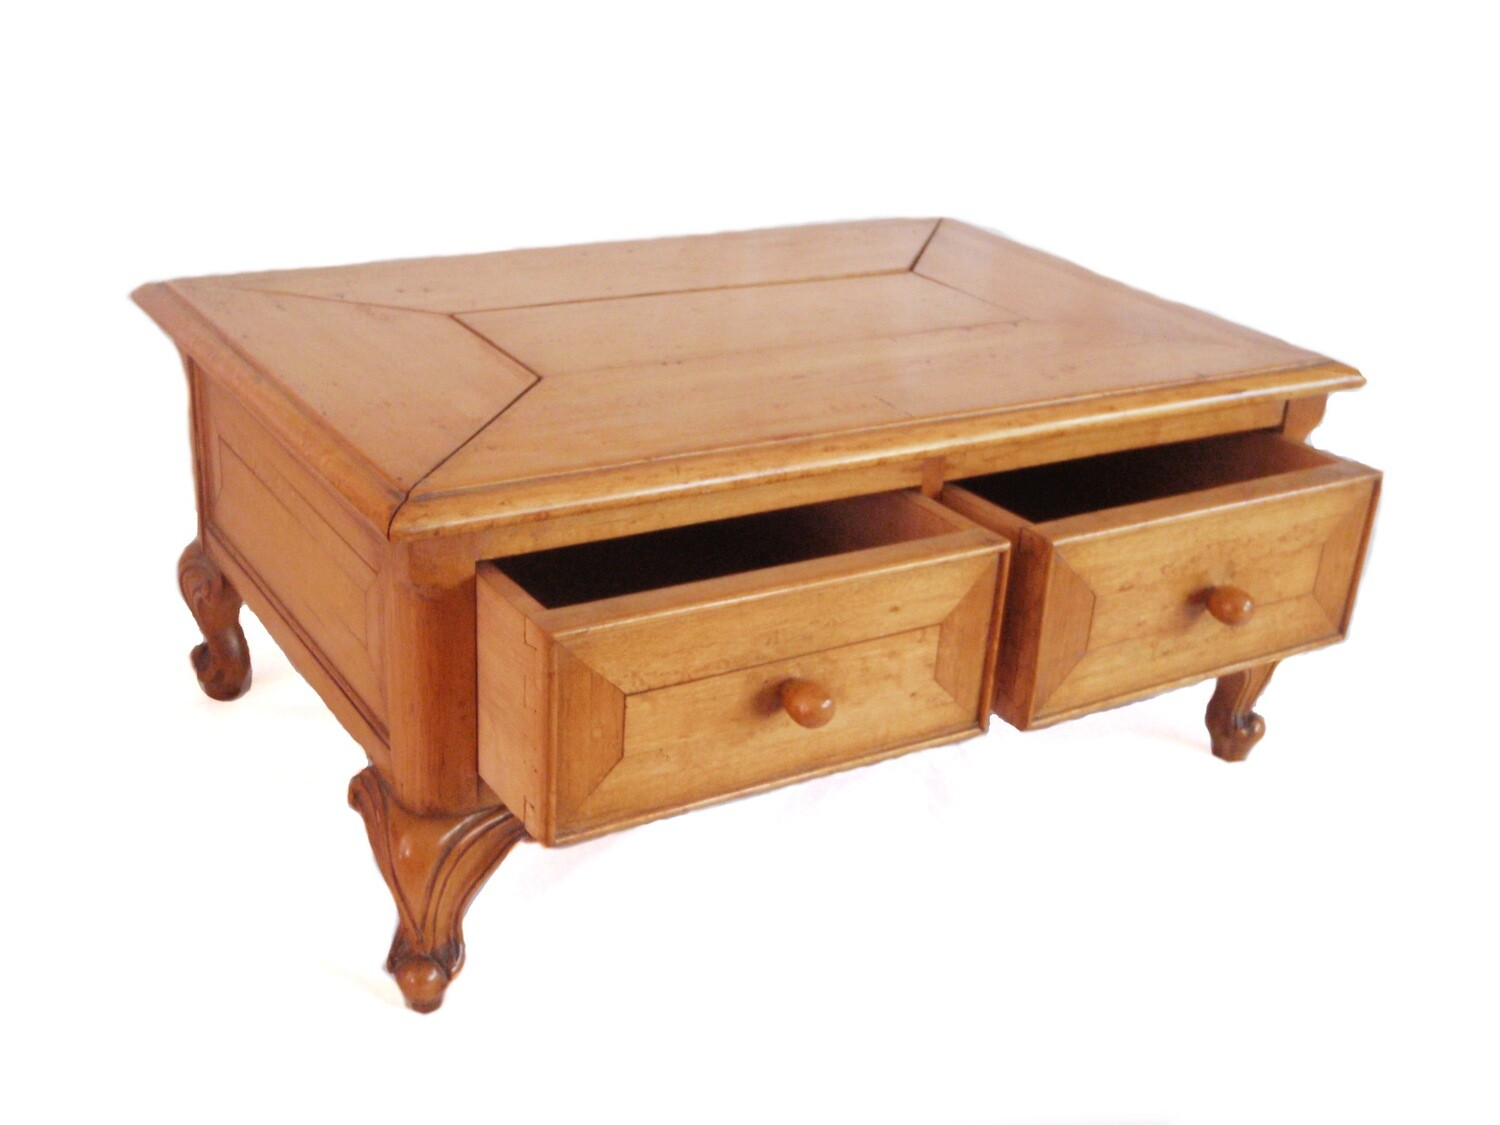 Large Antique Maple Jewelry Watch Box with Cabriole Legs